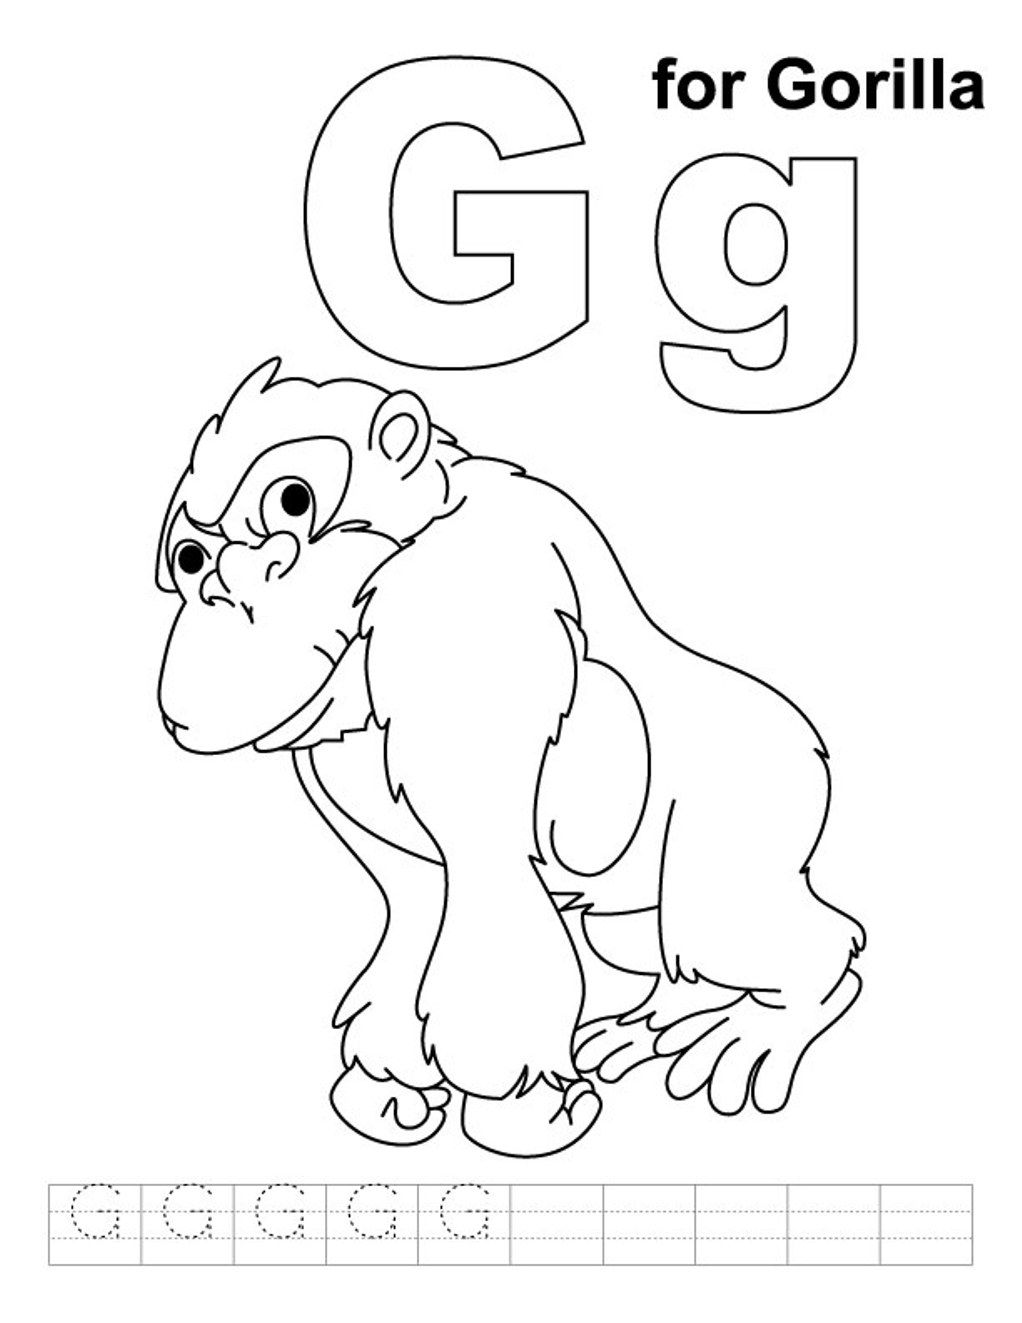 Coloring Pages Alphabet G For Gorilla Kids Handwriting Practice Coloring Pages Gorilla Craft